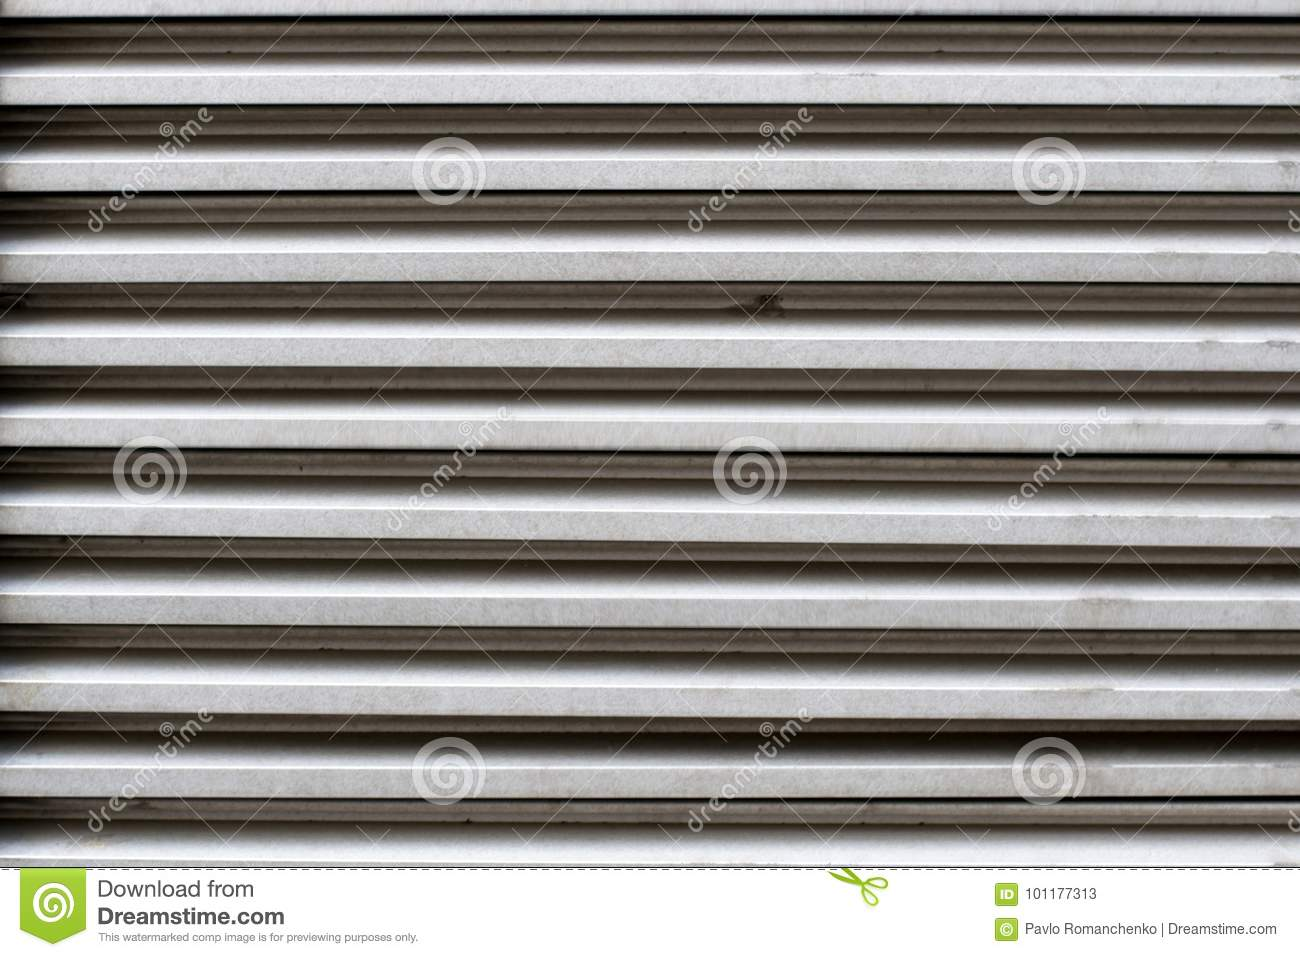 image brown metal the window stock closed blinds shutterstock photo